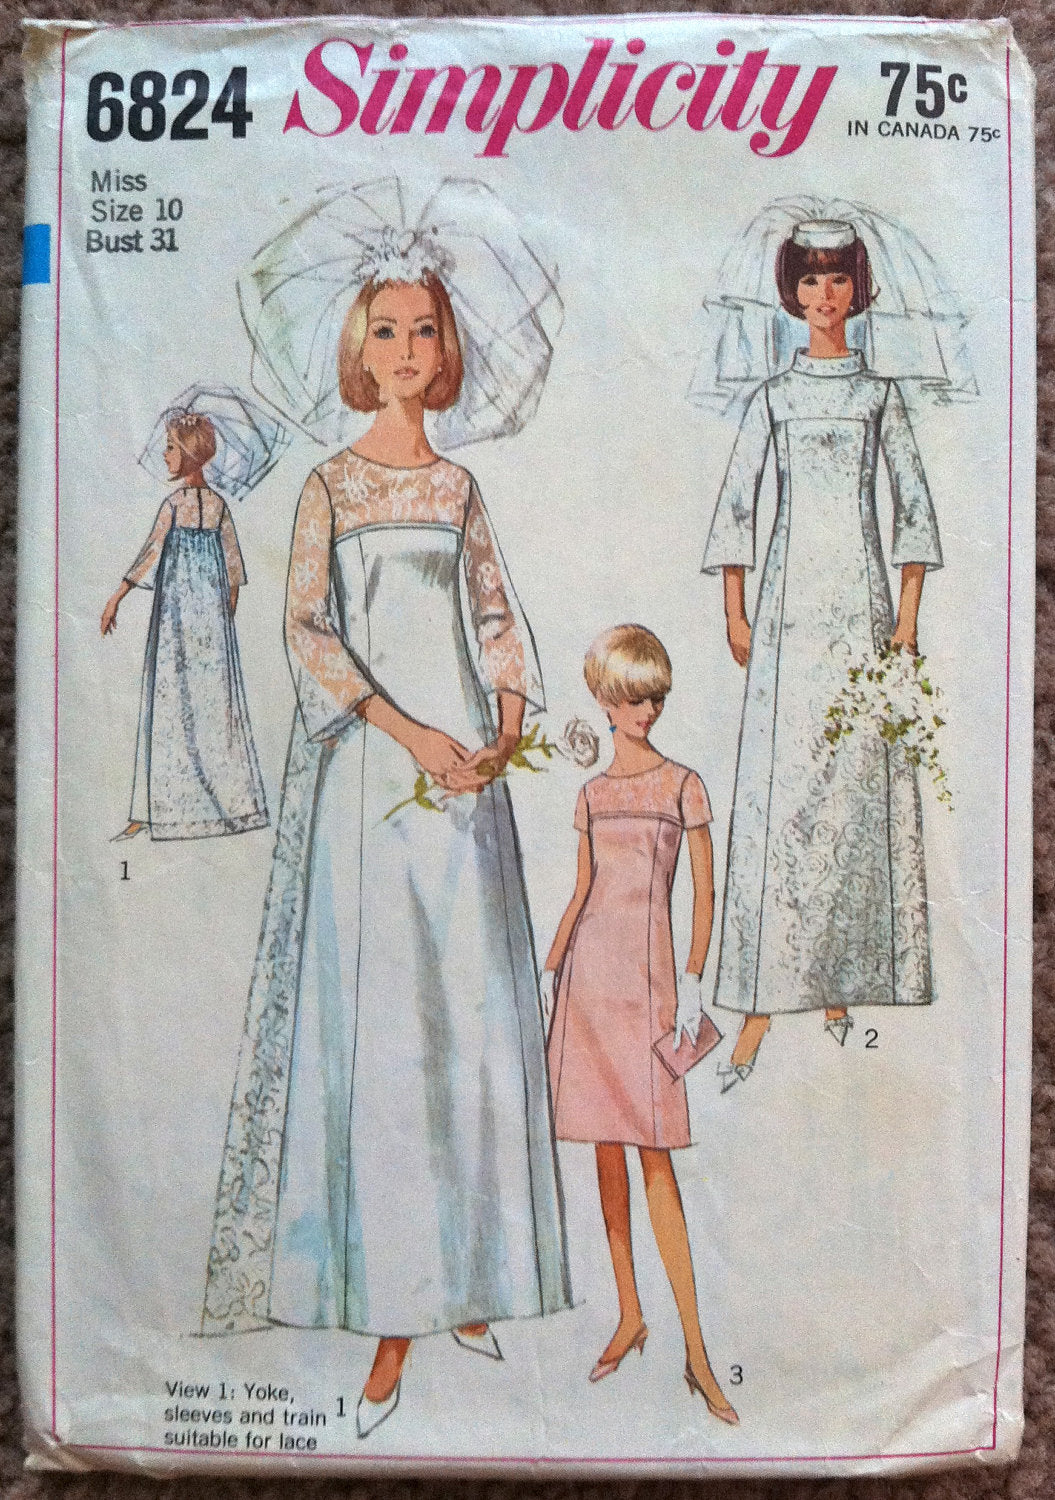 1960's Simplicity Wedding Dress and Bridesmaid Dress Pattern - Bust 31 - no. 6824